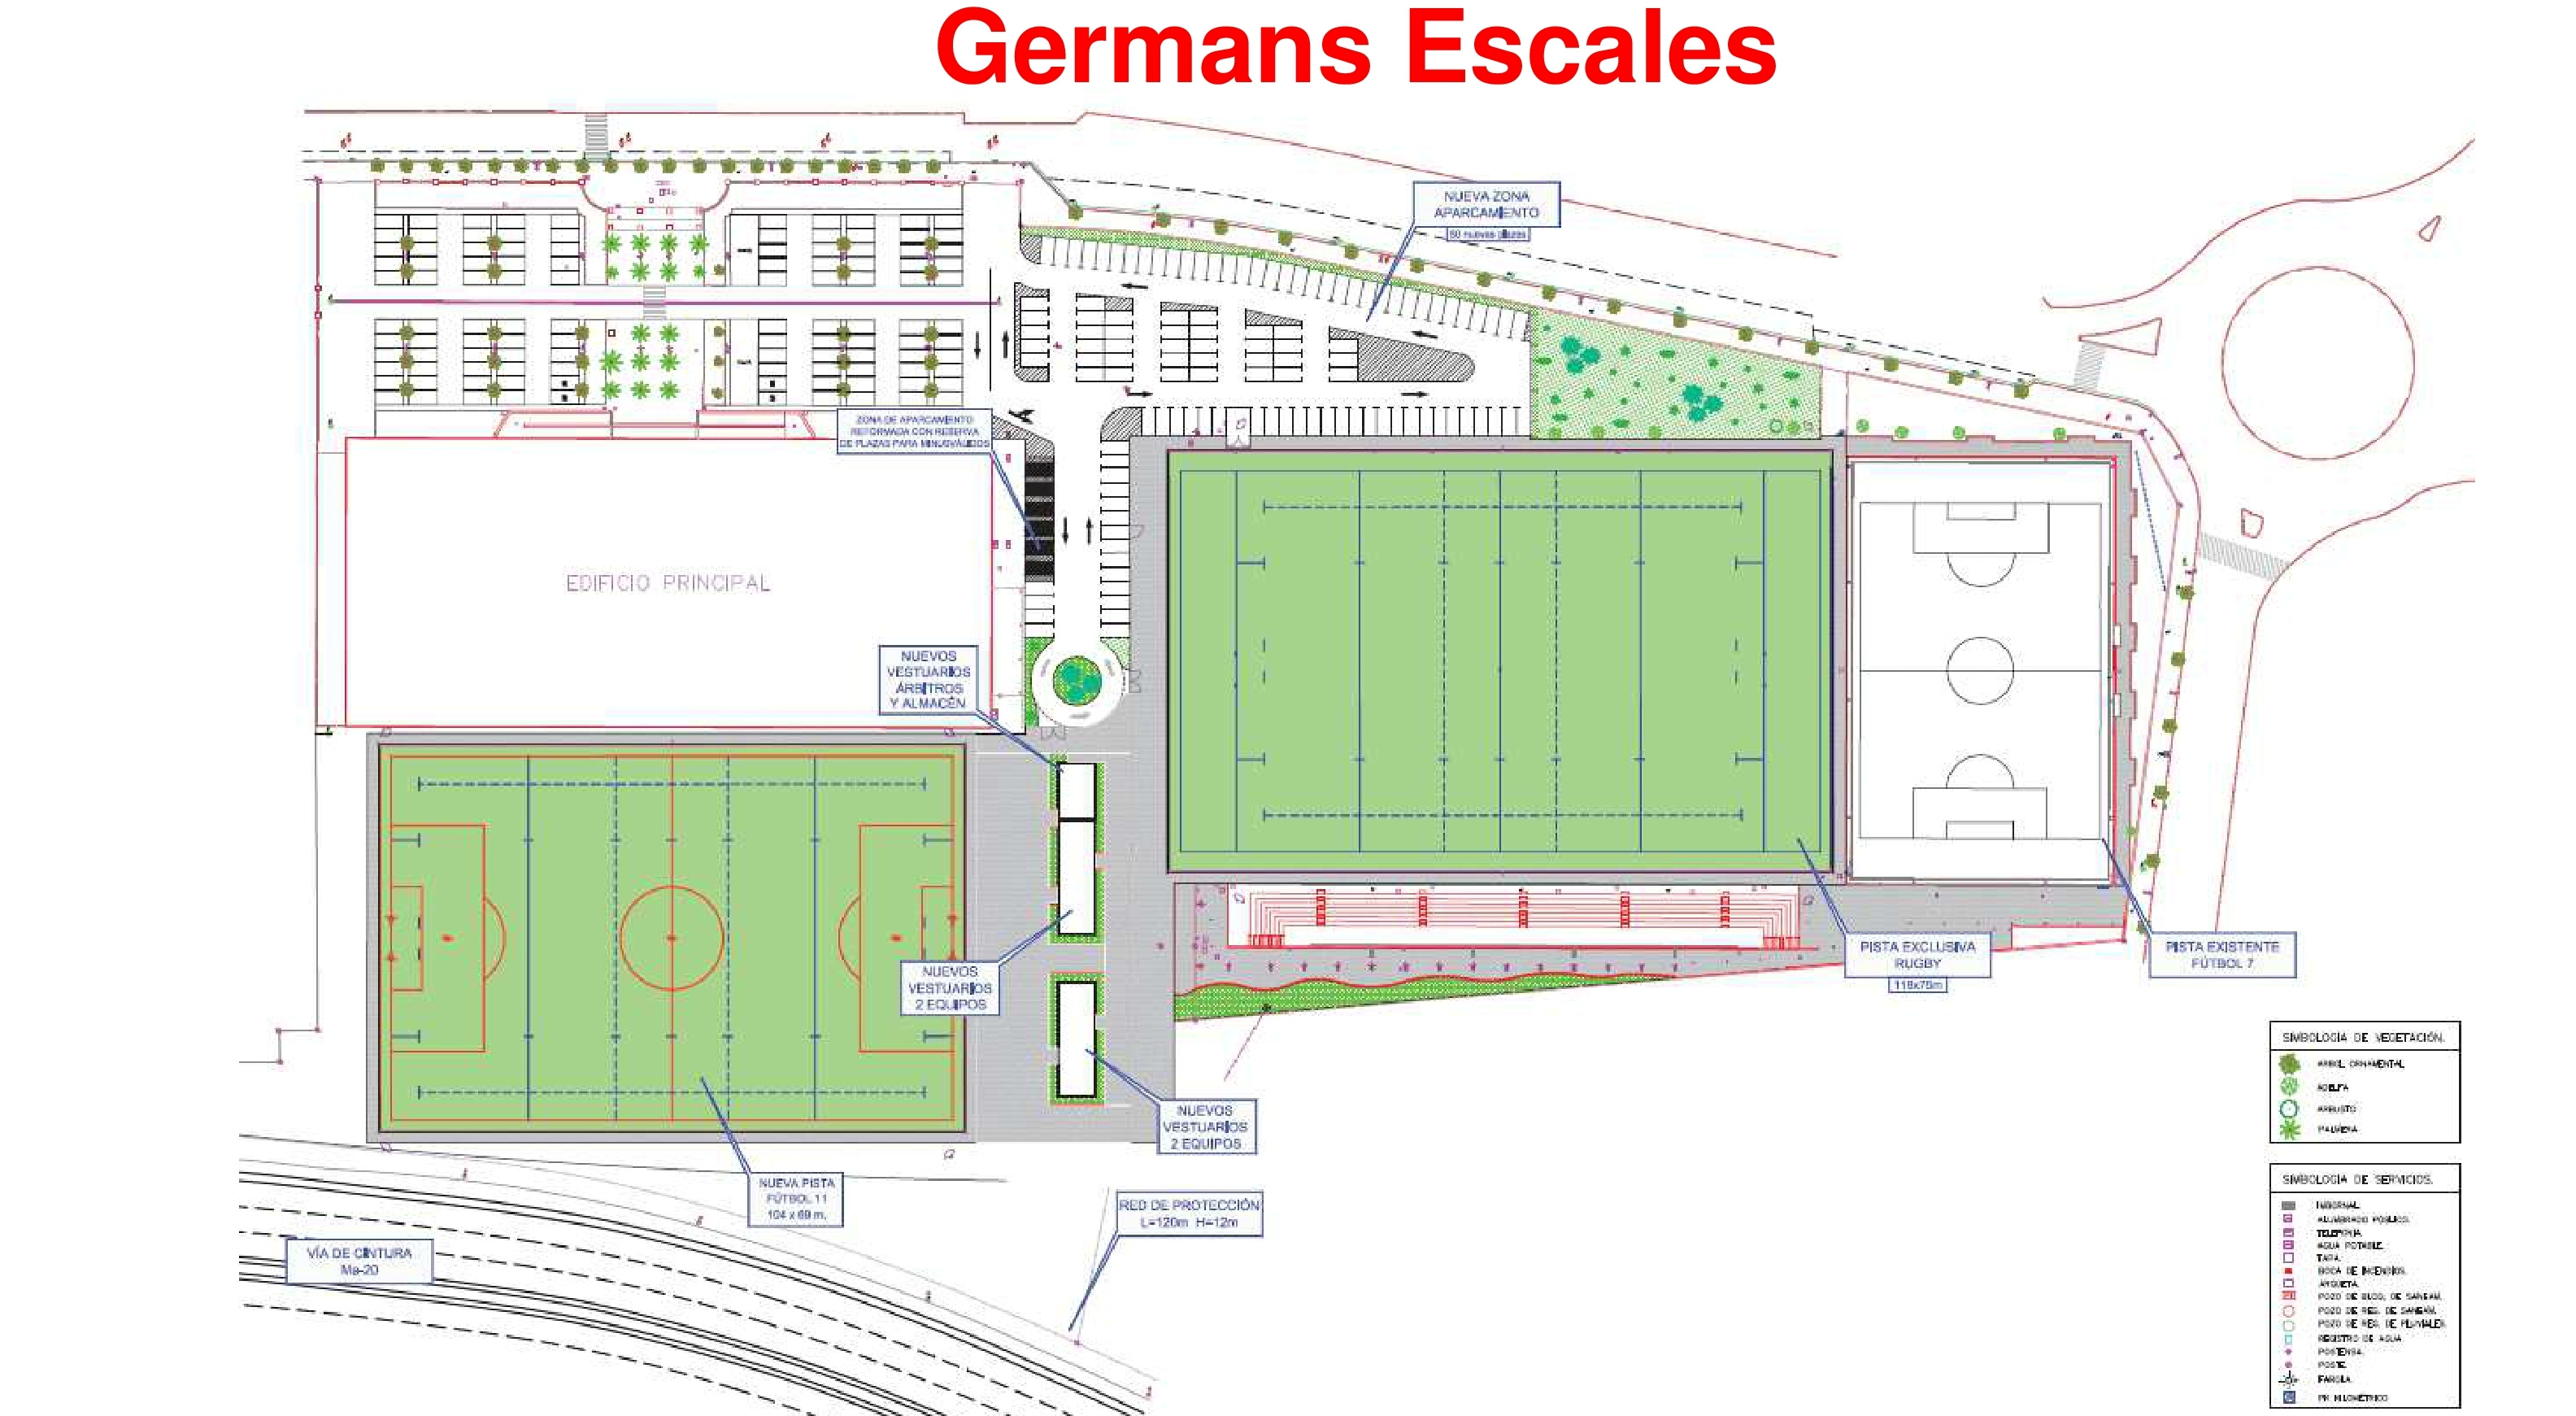 rugbi germans escalas